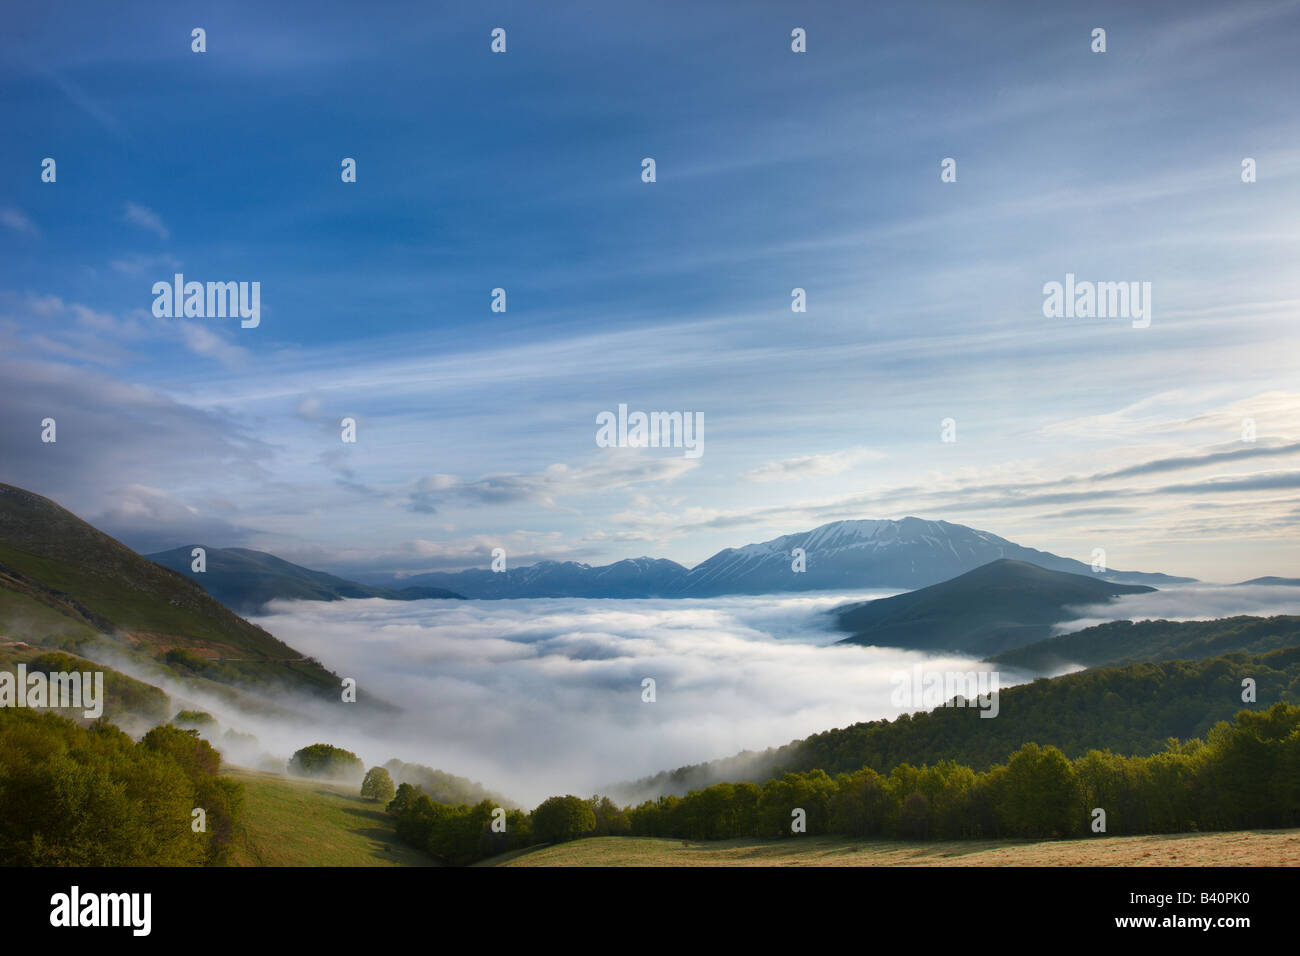 mist lying on the Piano Grande at dawn with the mountains of Monti Sibillini National Park rising above, Umbria, - Stock Image